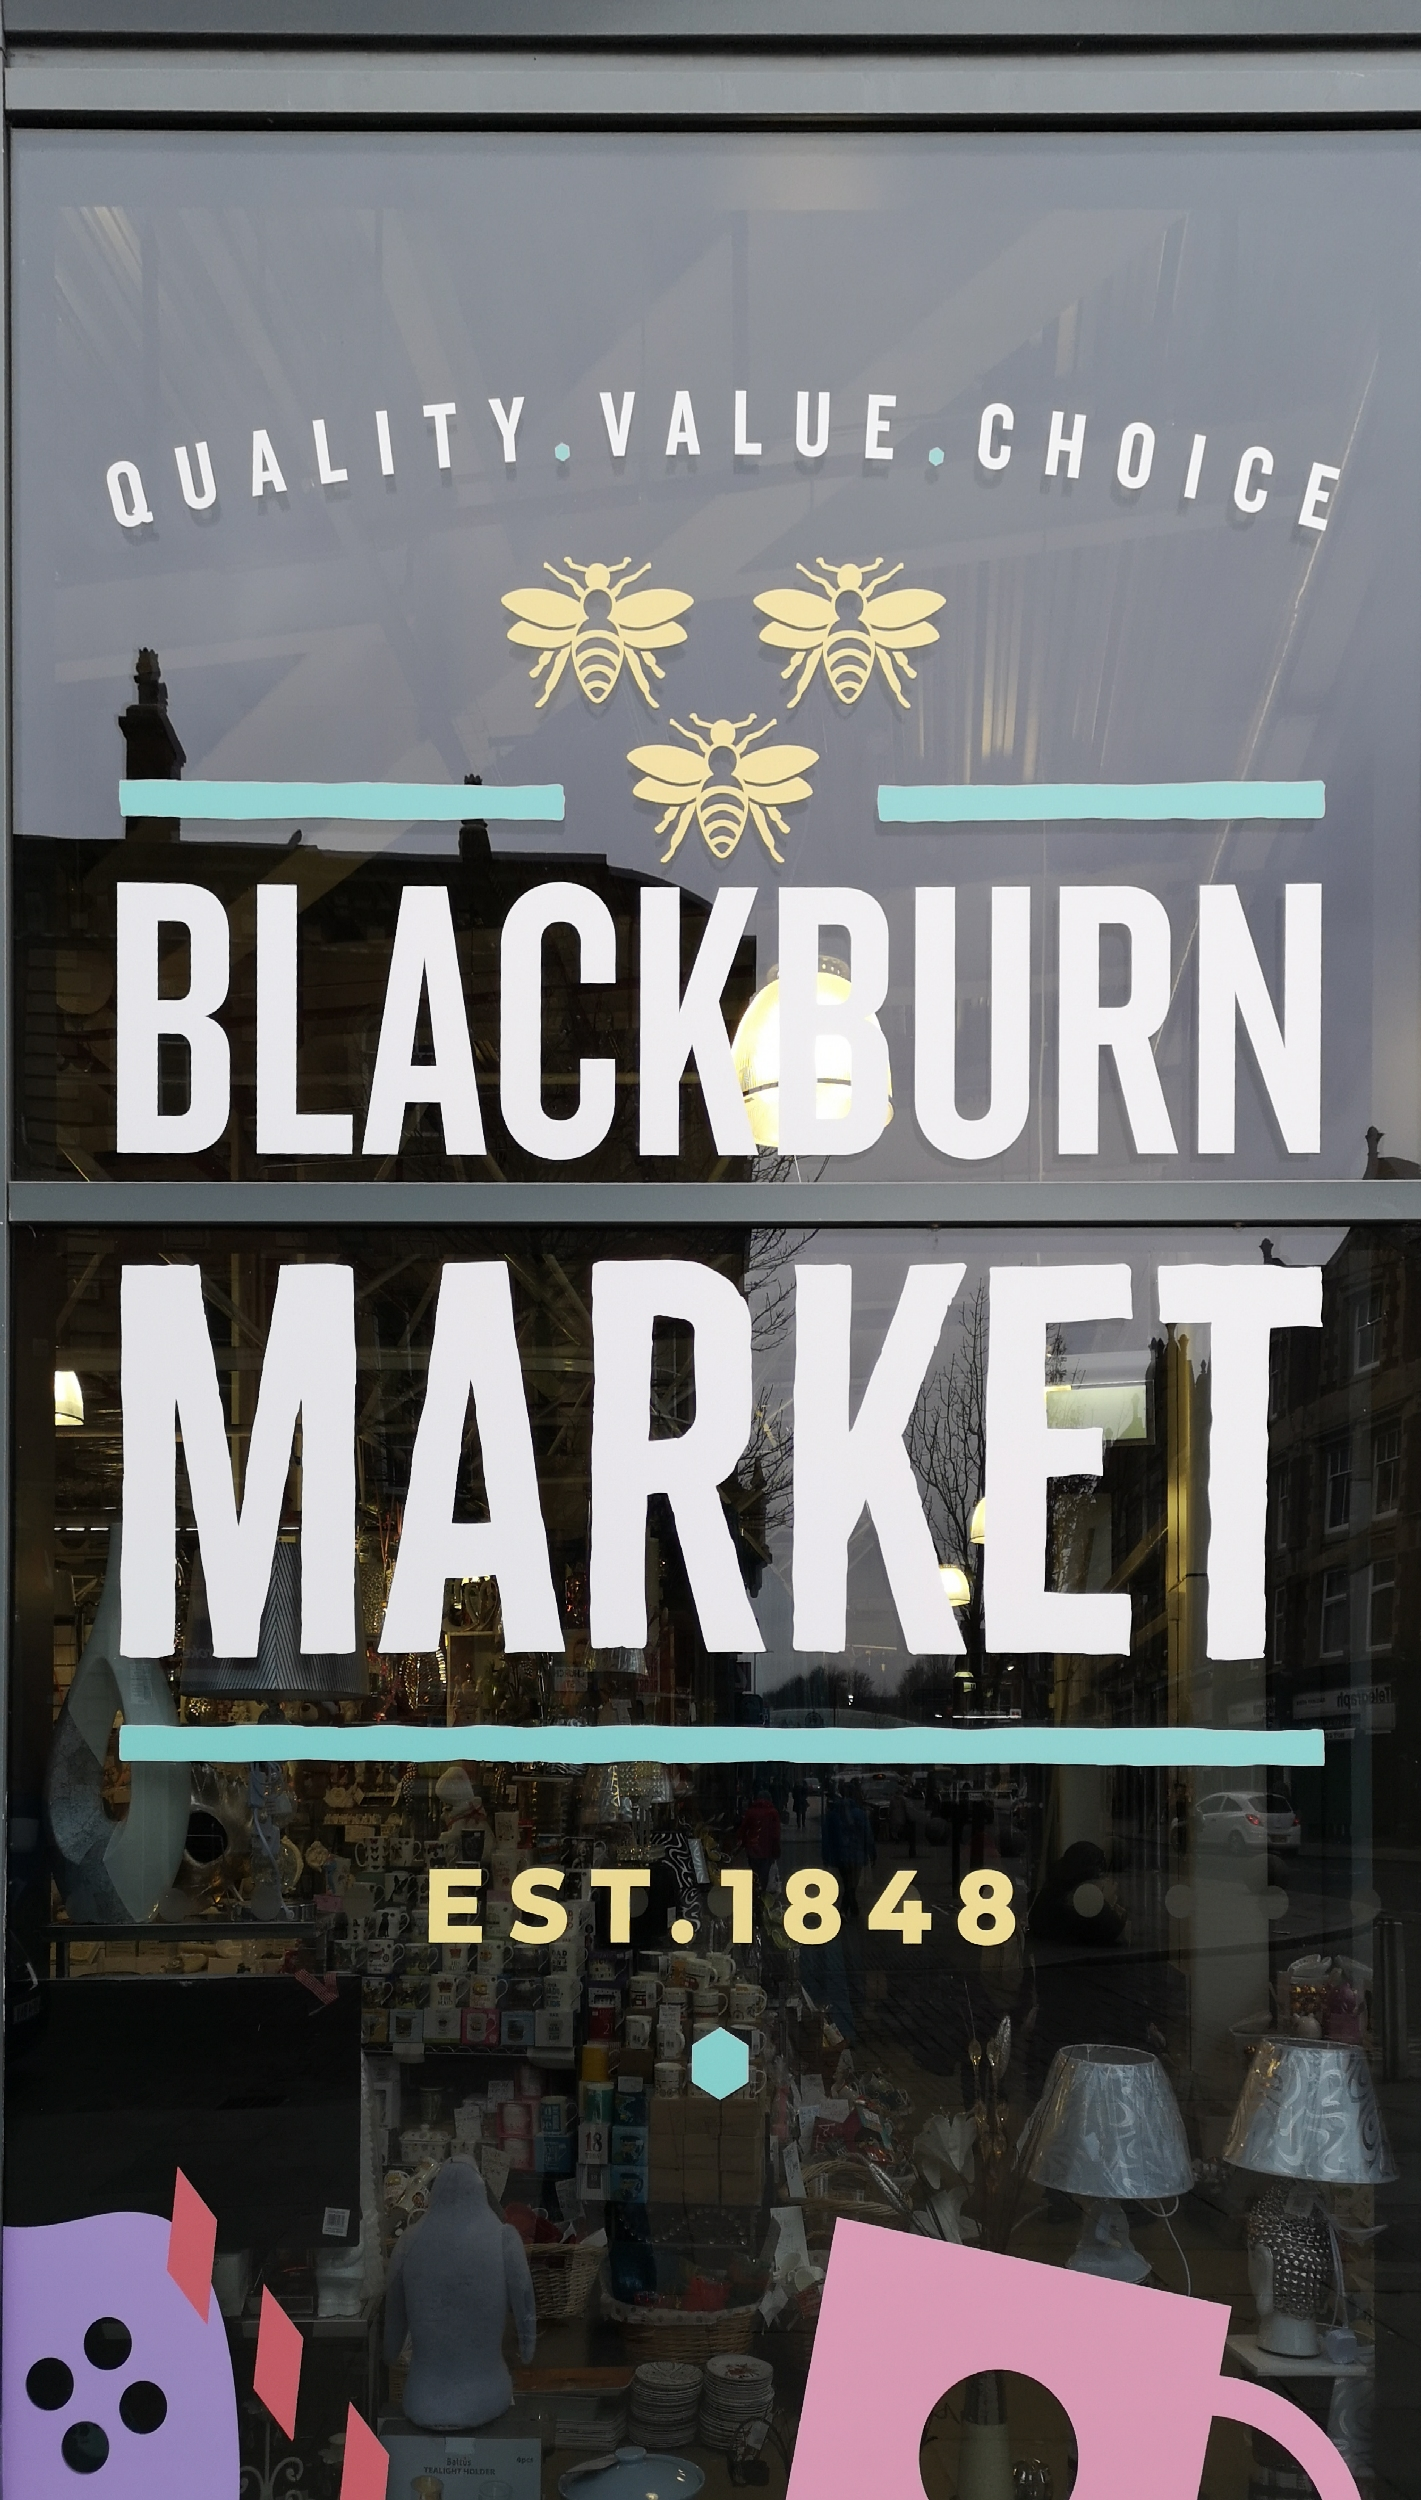 Historic Blackburn market -1848